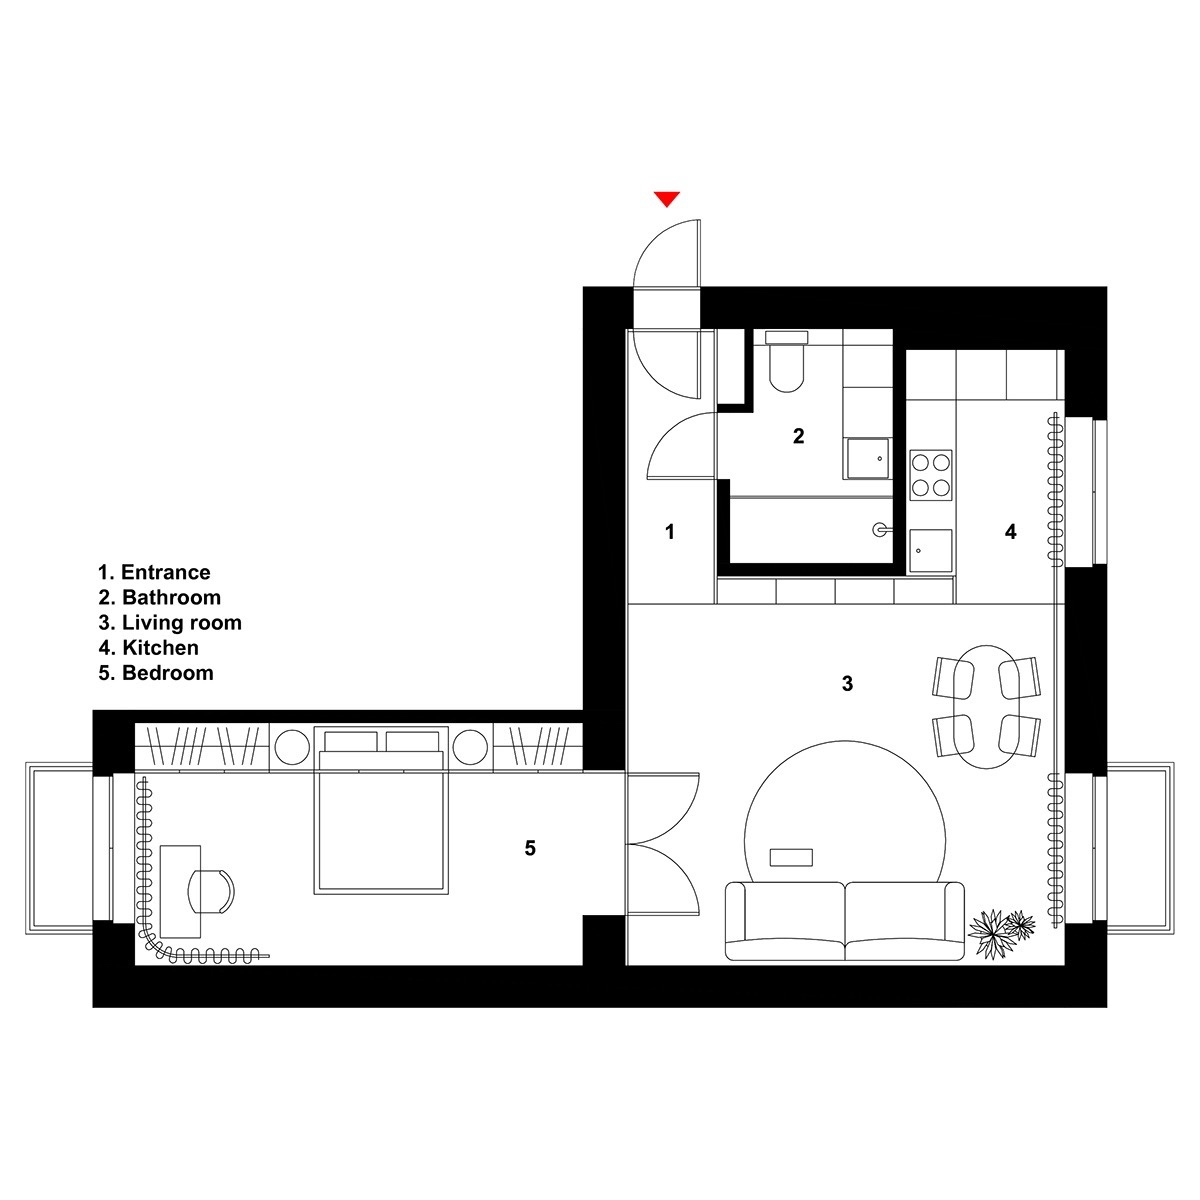 2 Well Rounded Home Designs Under 600 Square Feet